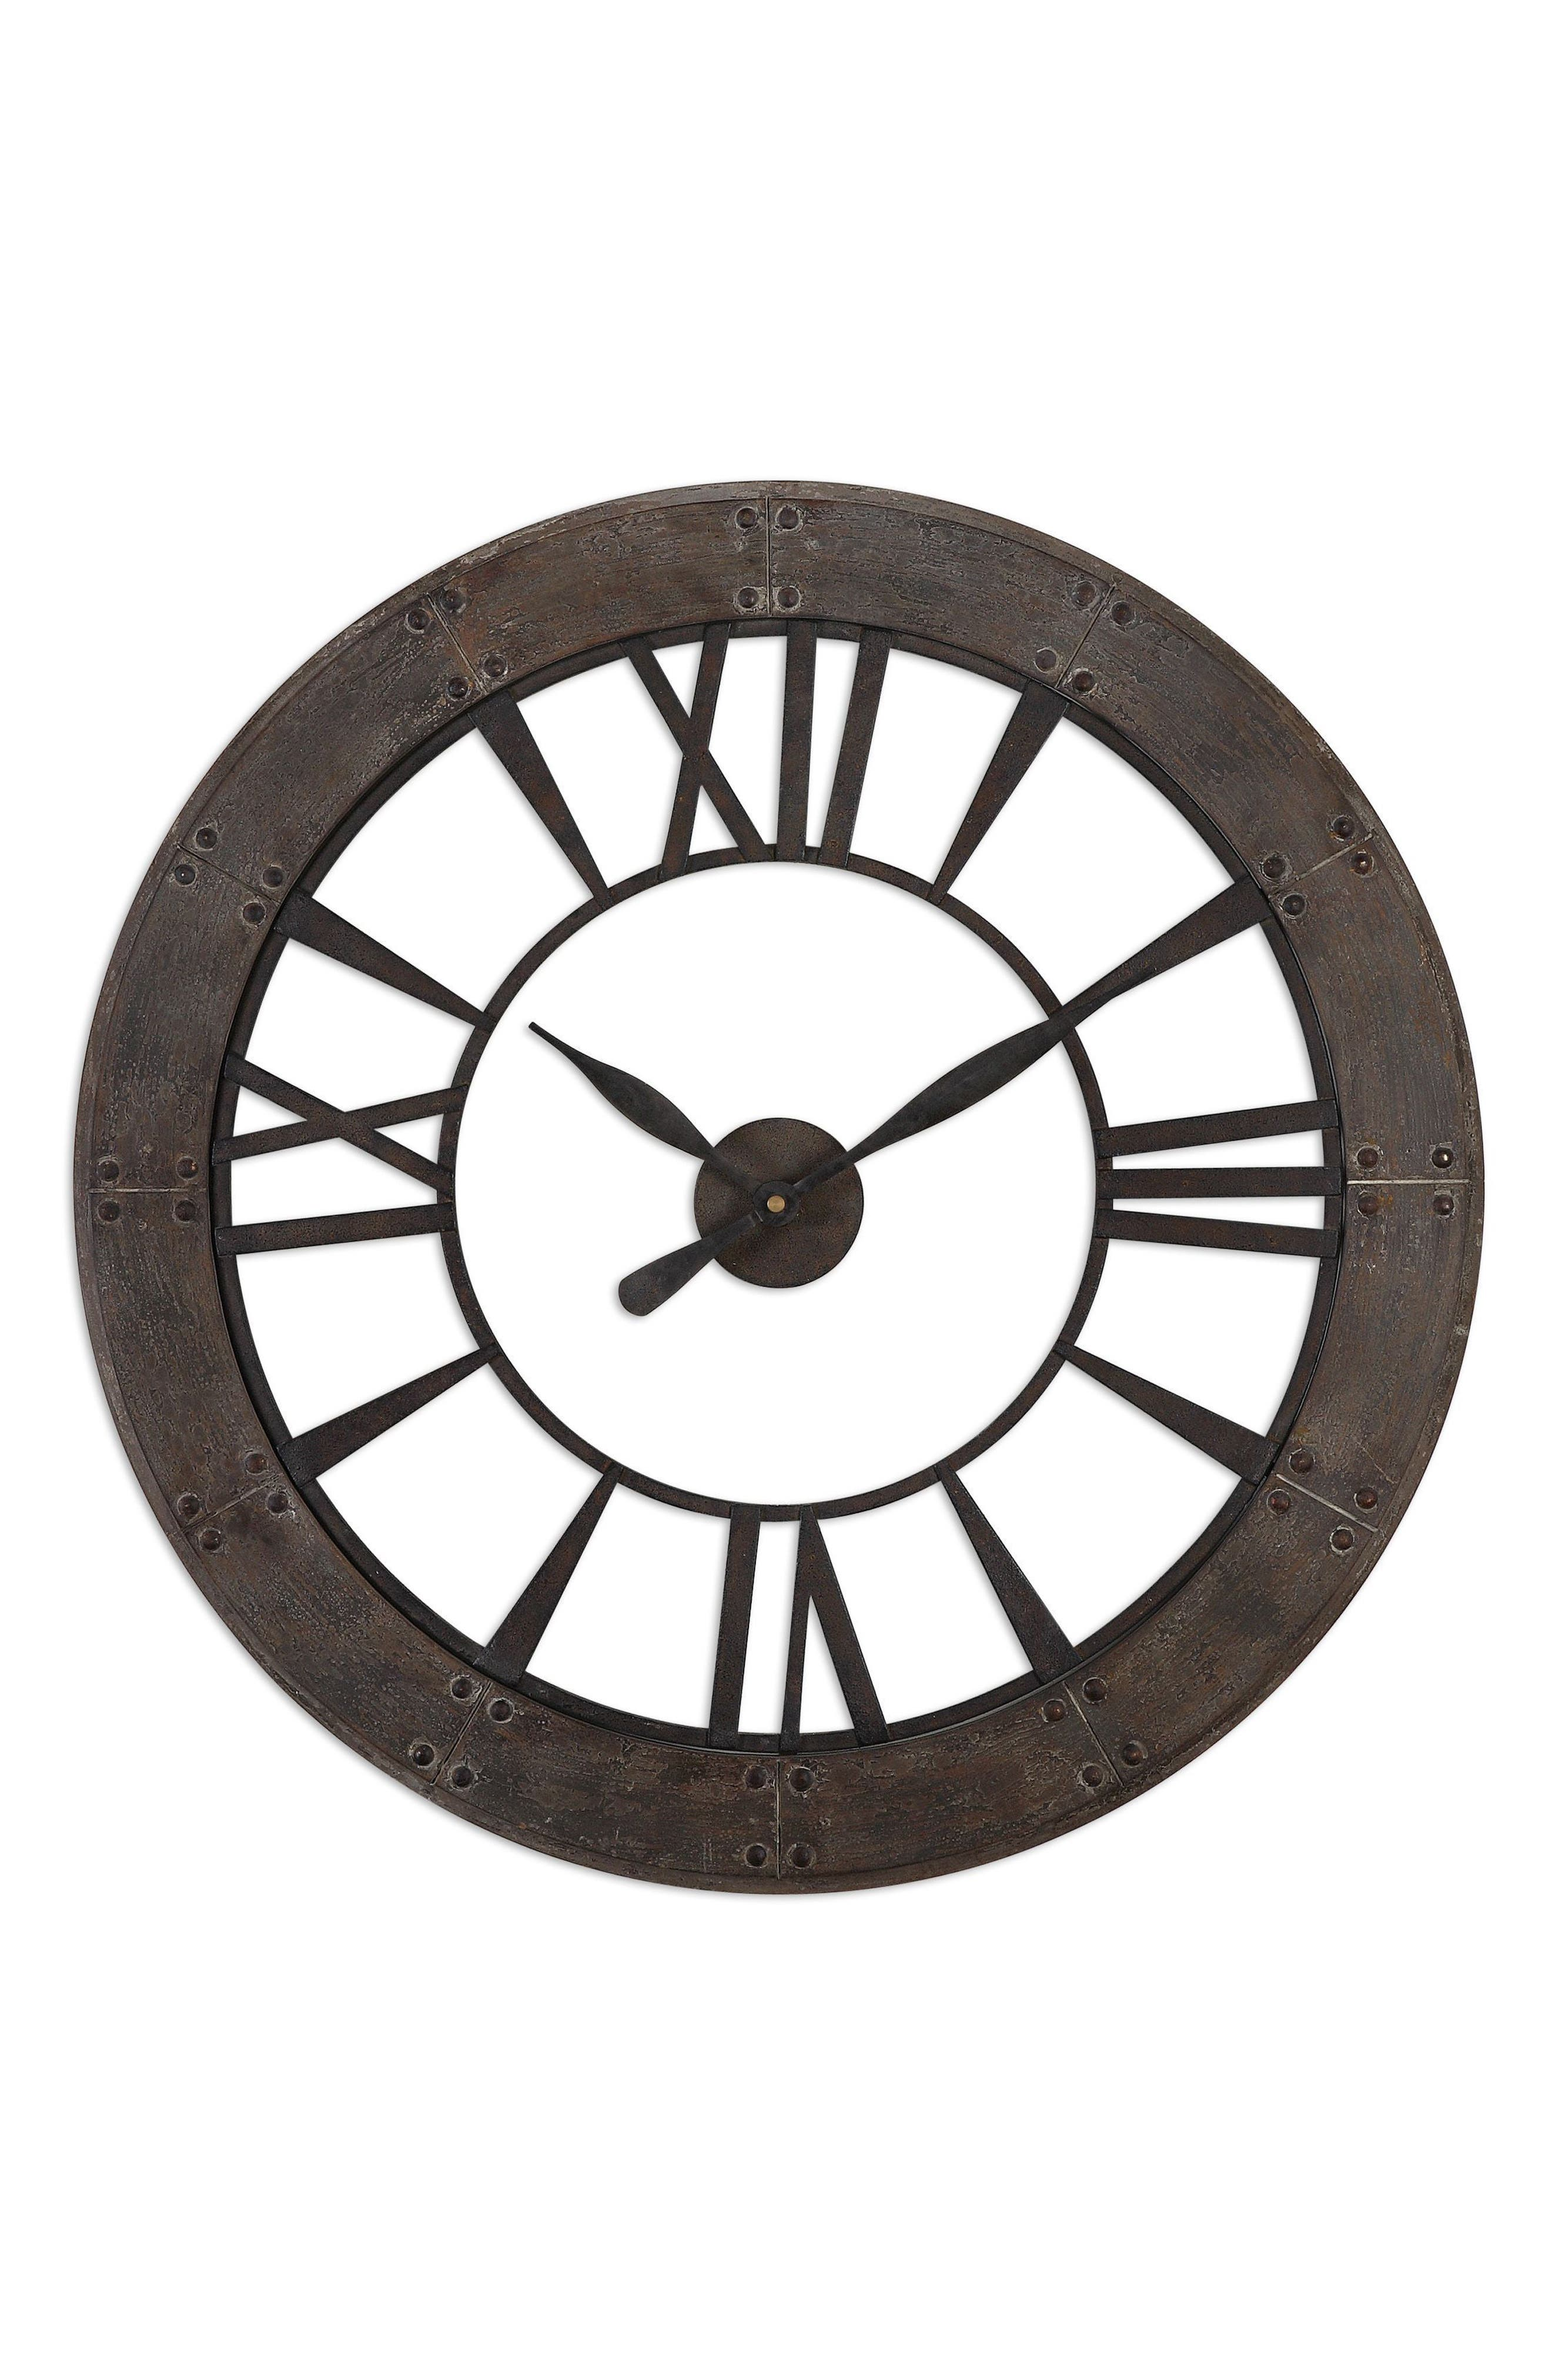 Ronan Wall Clock,                         Main,                         color, Metallic Rust/ Copper